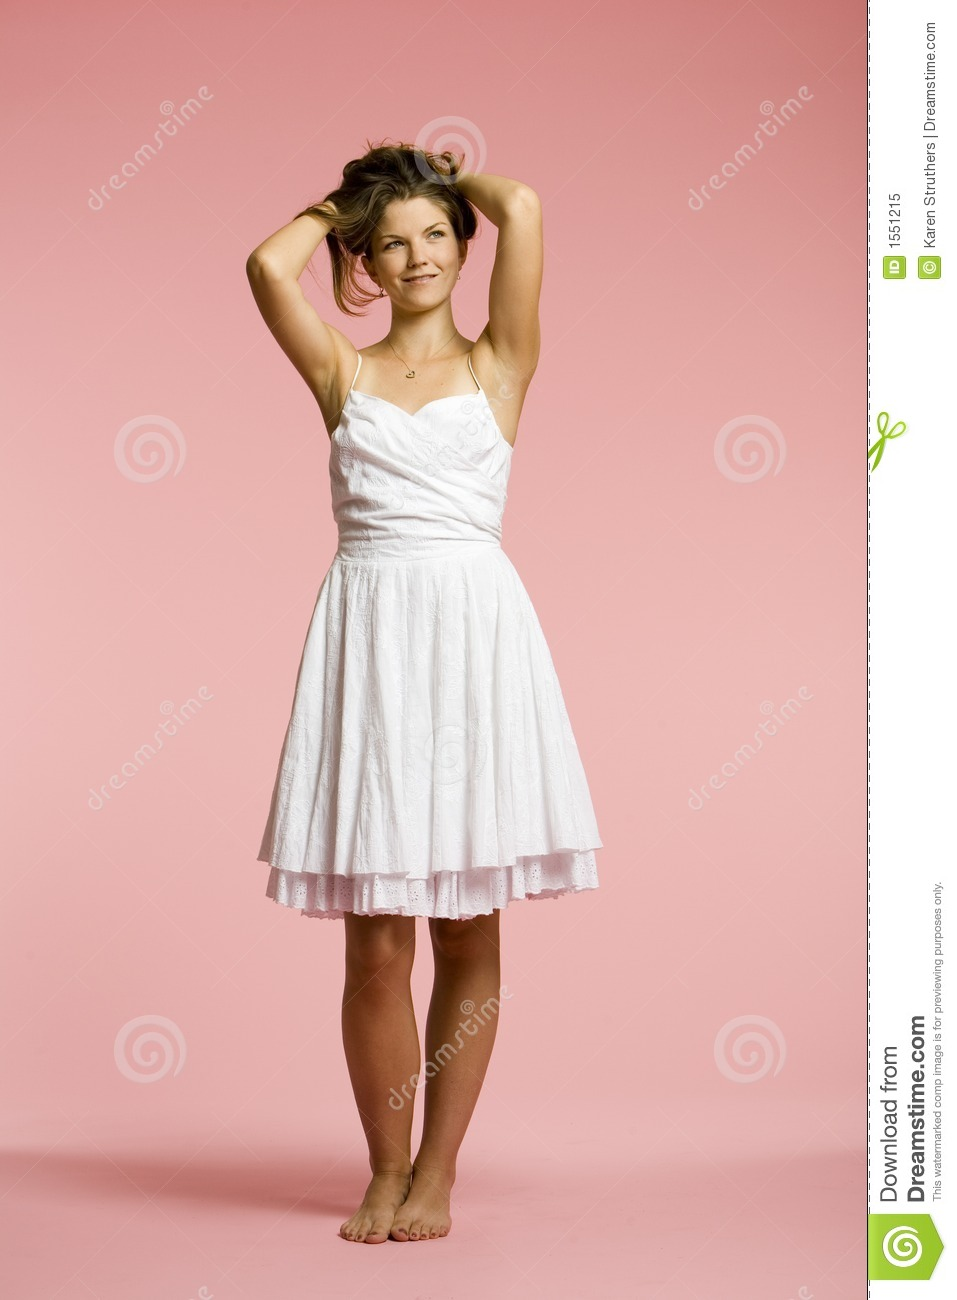 74aaa92cd Beautiful Young Woman Lifting Her Hair Stock Image - Image of dance ...